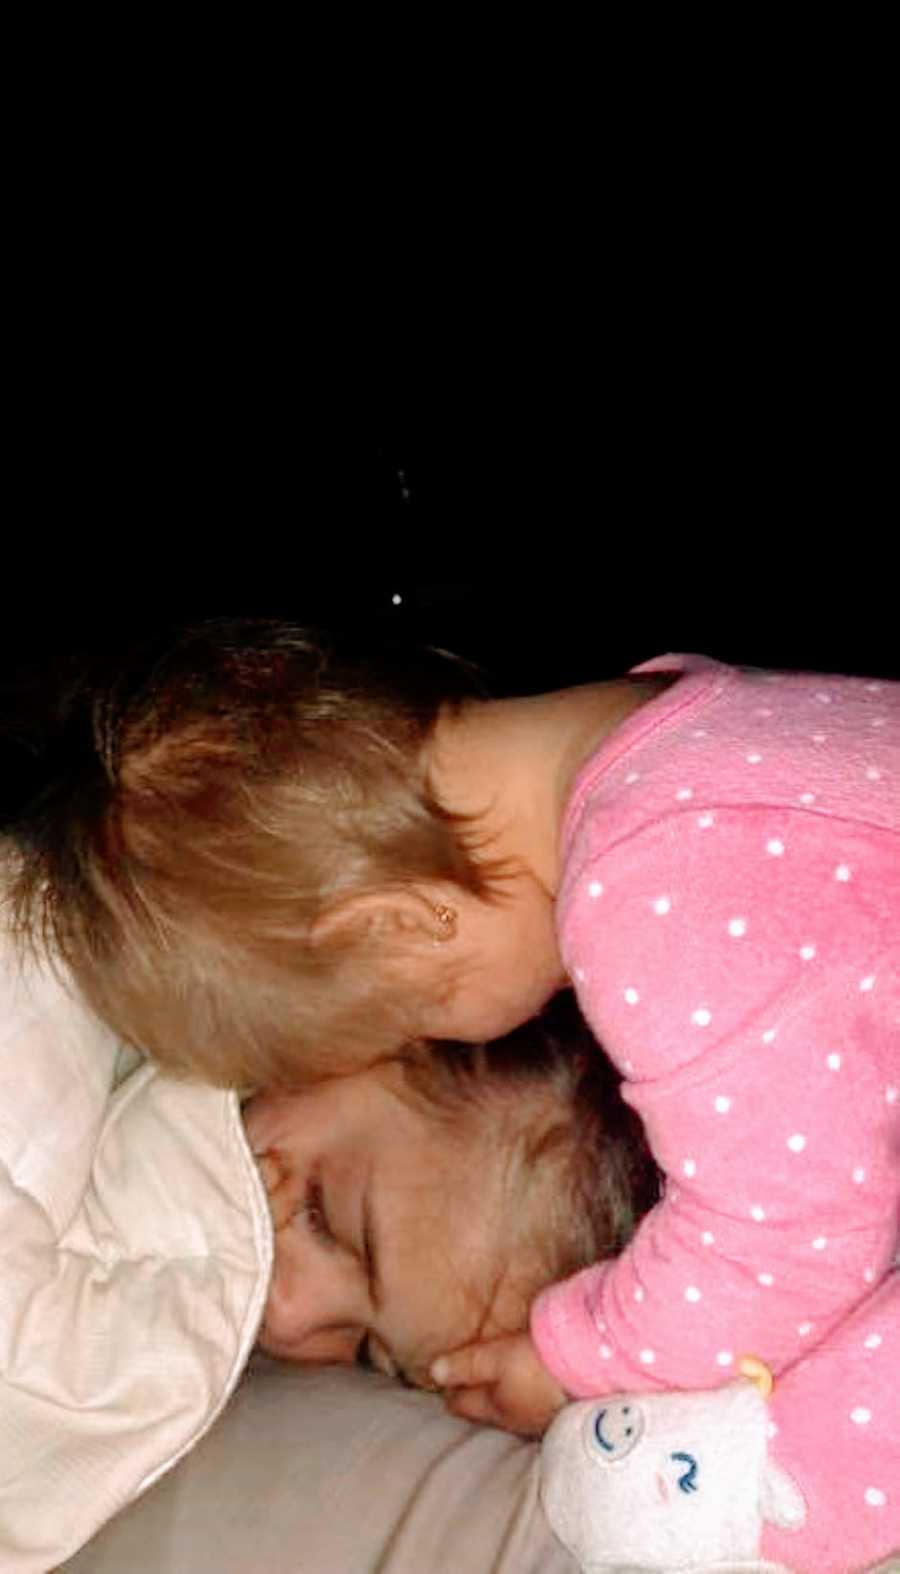 Two sisters cuddle in the dark at bedtime